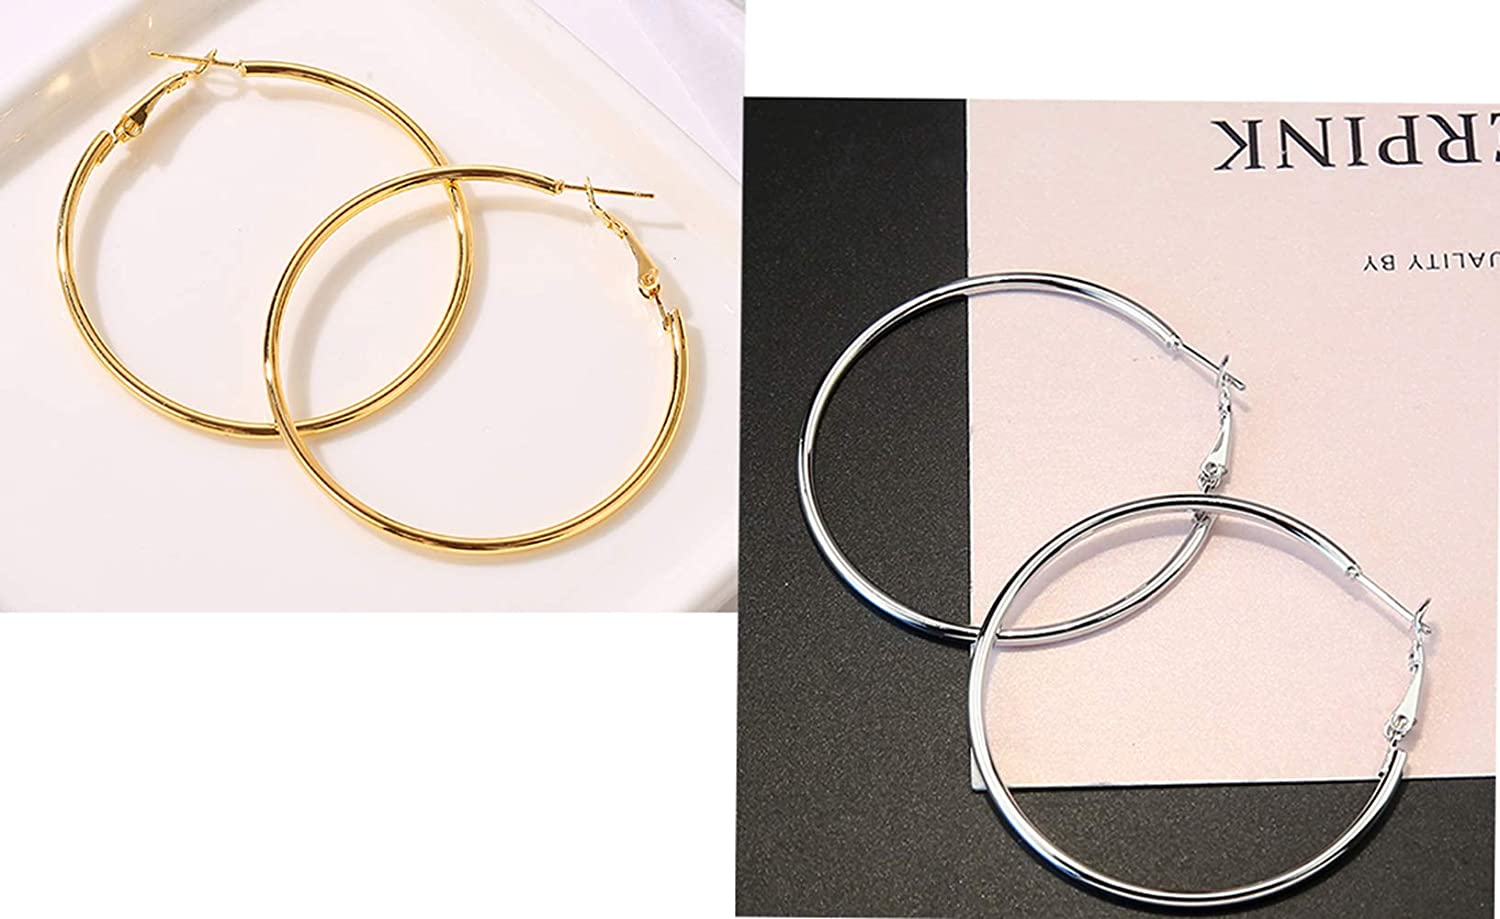 Thank&U 3 Pairs 60mm Big Hoop Earrings,Stainless Steel Hoop Earrings 18K Gold Plated Rose Gold Plated Silver Hoops for Women Girls,Hypoallergenic   with Gift Box(3 Colors Set)